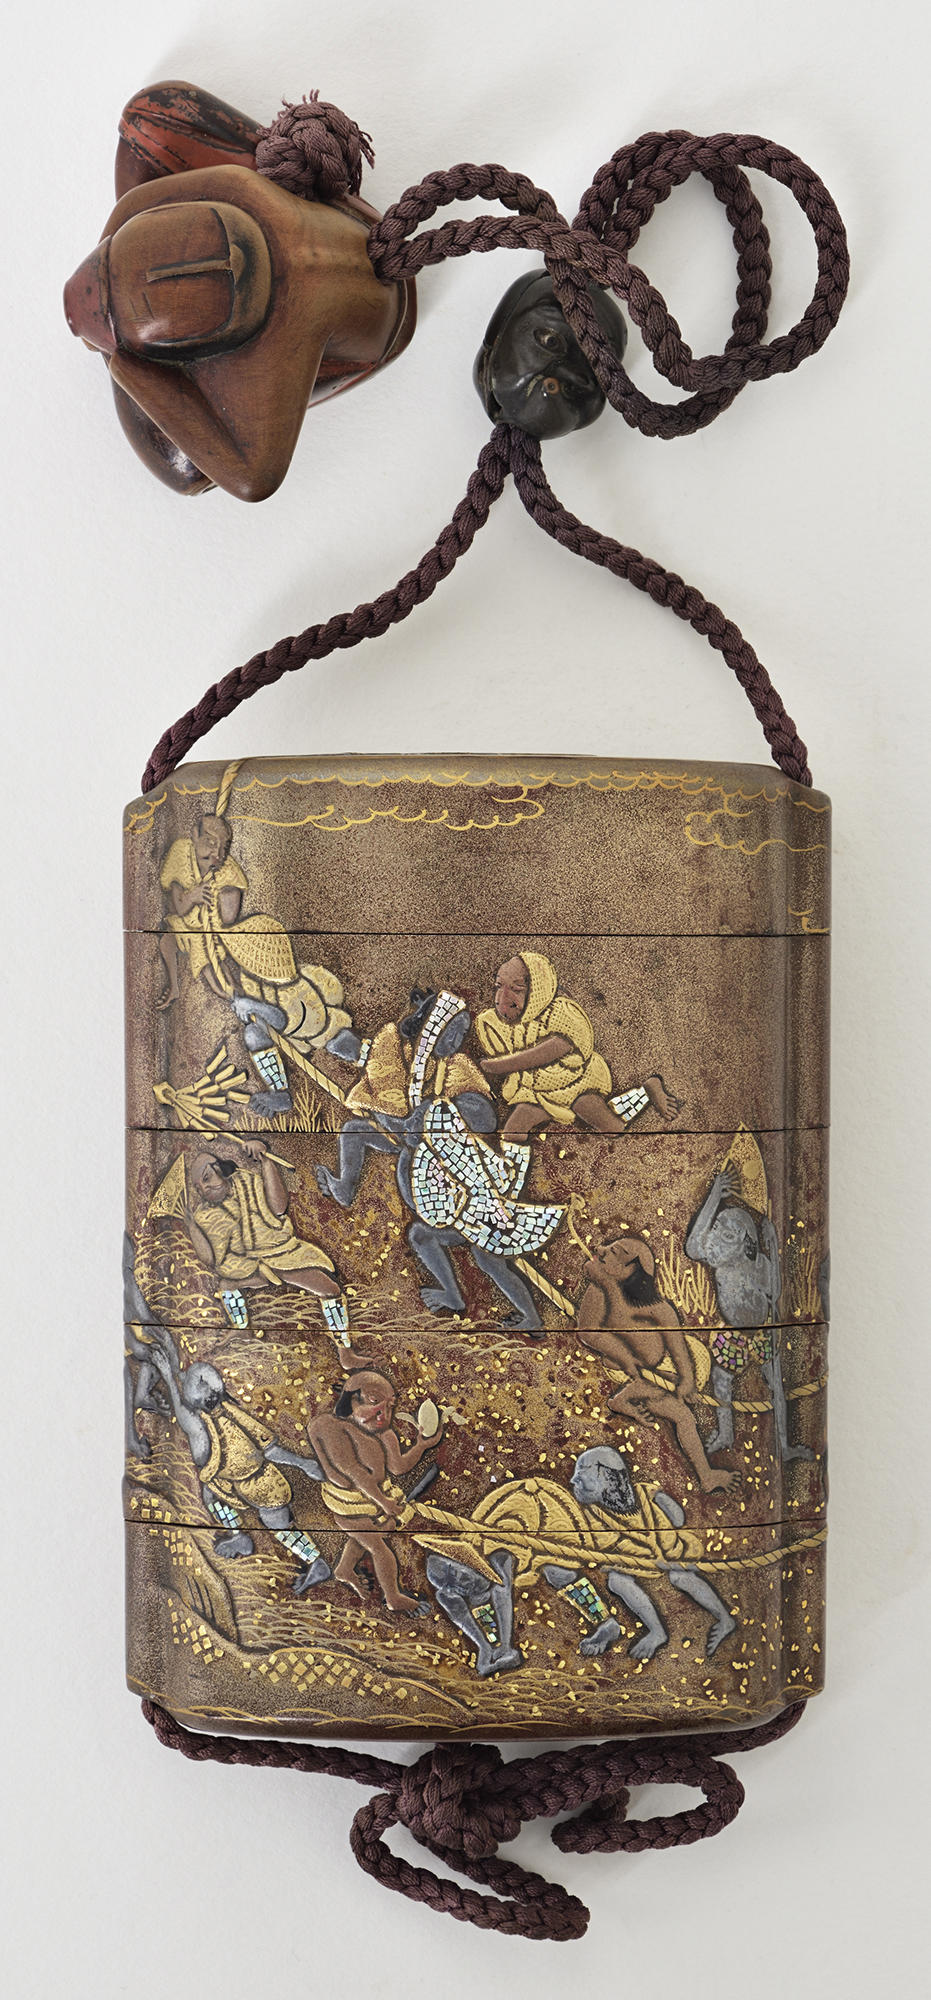 Japanese, Medicine Case (Inrō): Men Pulling a Cart, 18th century. Lacquered wood with gold, silver, and mother-of pearl decoration; with lacquer netsuke and silver, copper, and shibuichi alloy ojime,